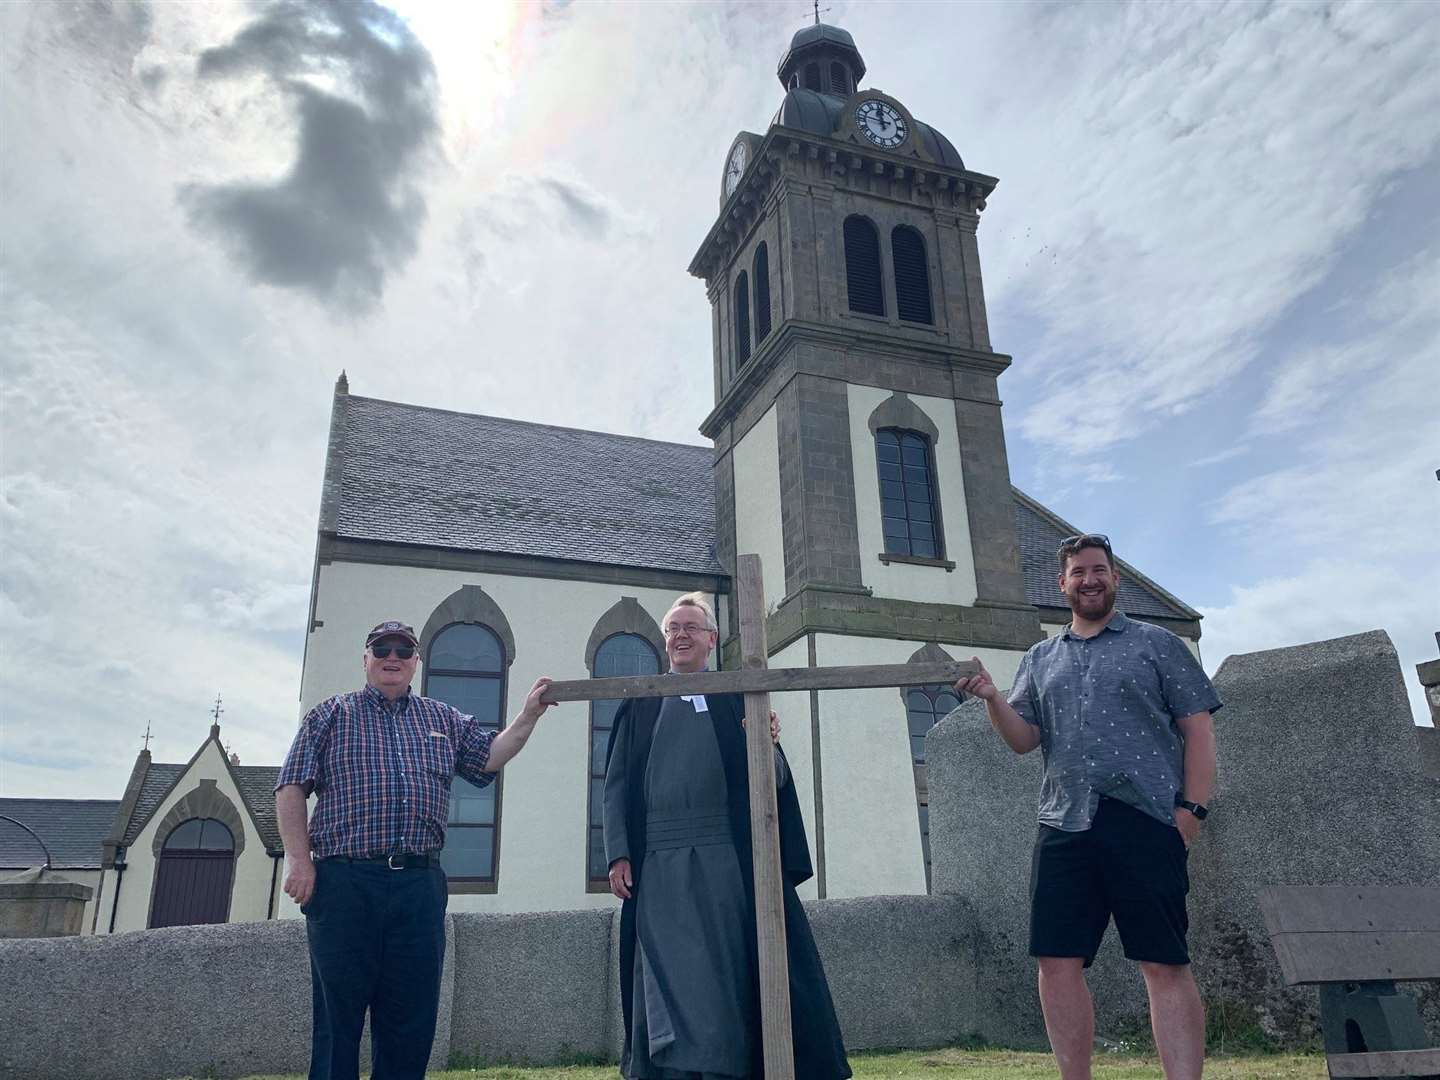 Banff minster Rev David Locke (centre) was supported on the penultimate walk of his challenge by Macduff Parish Church minister Rev Hugh O'Brien (left) and Banff River Church pastor Rob McArthur. Picture: Andy Taylor